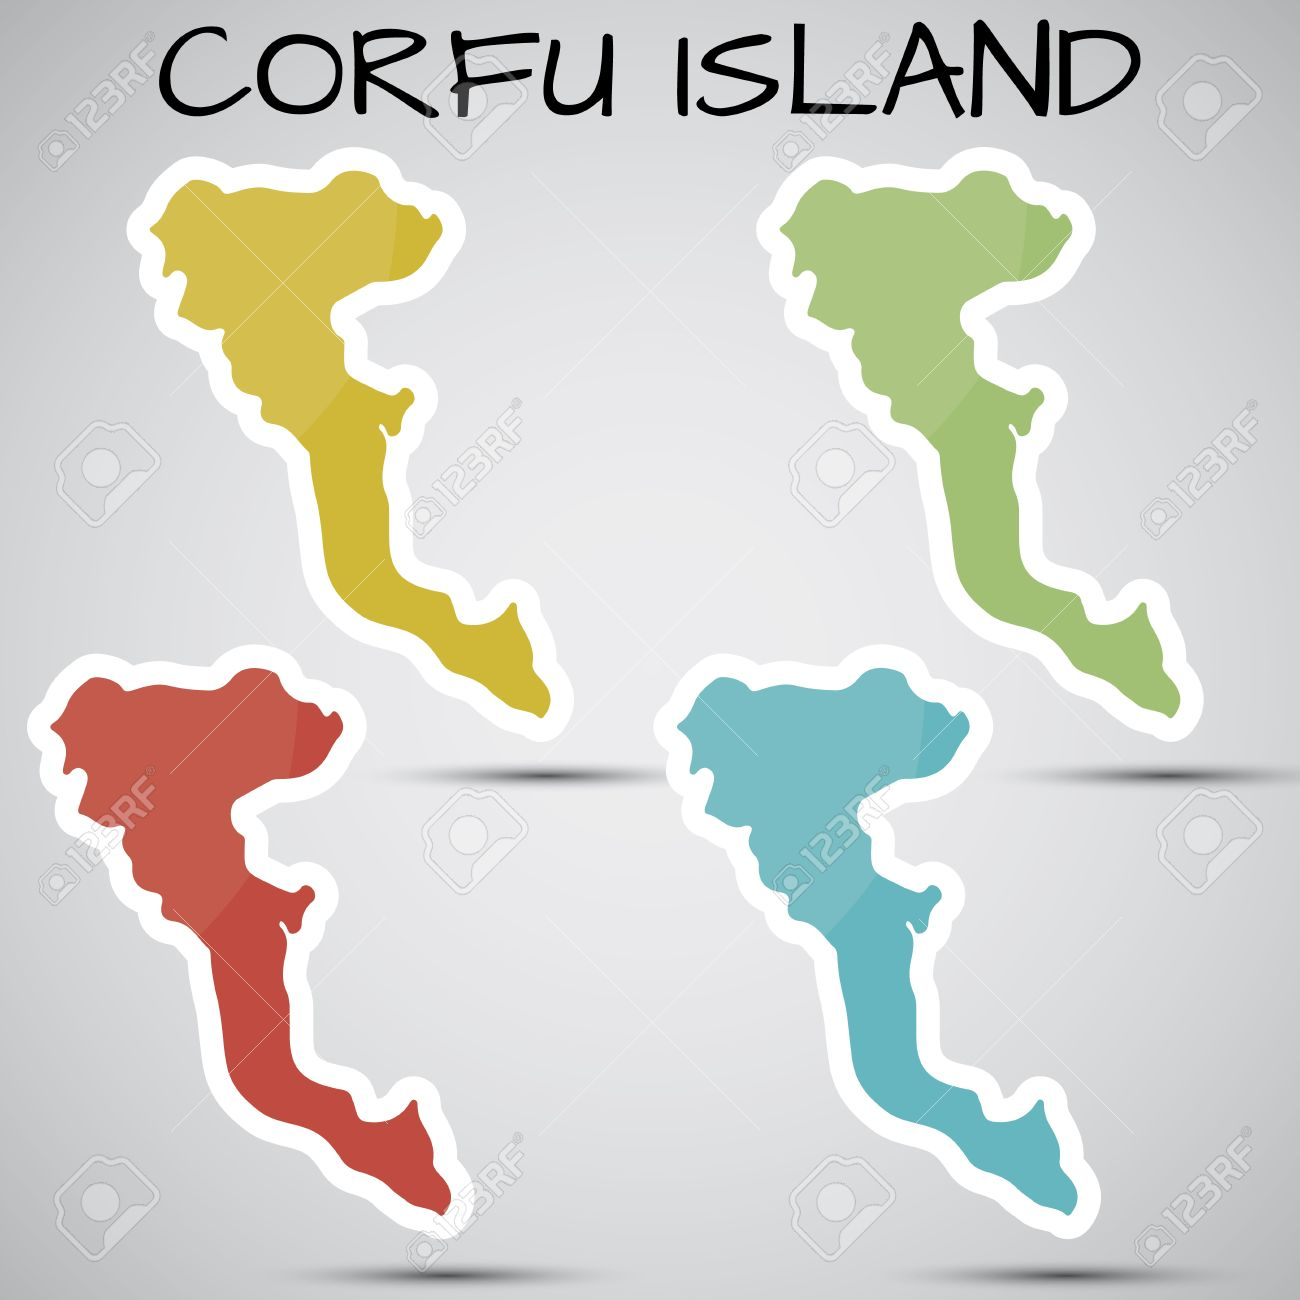 Stickers In Form Of Corfu Island, Greece Royalty Free Cliparts.